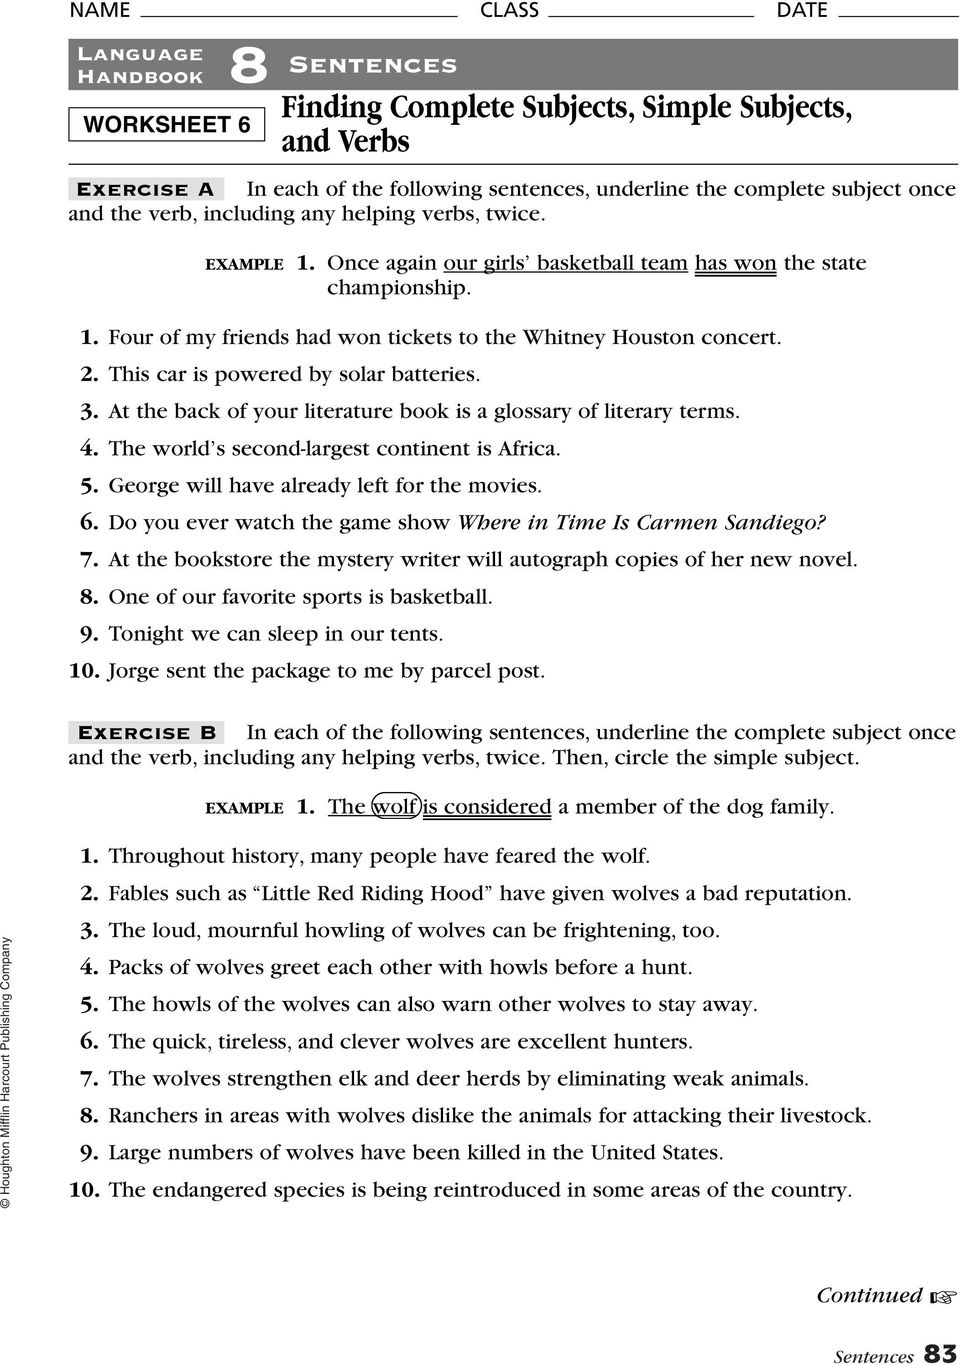 hight resolution of 8 Sentences. Finding Subjects and Predicates. Language Handbook. Exercise A  Use a vertical line to separate the complete subject and the complete - PDF  Free Download